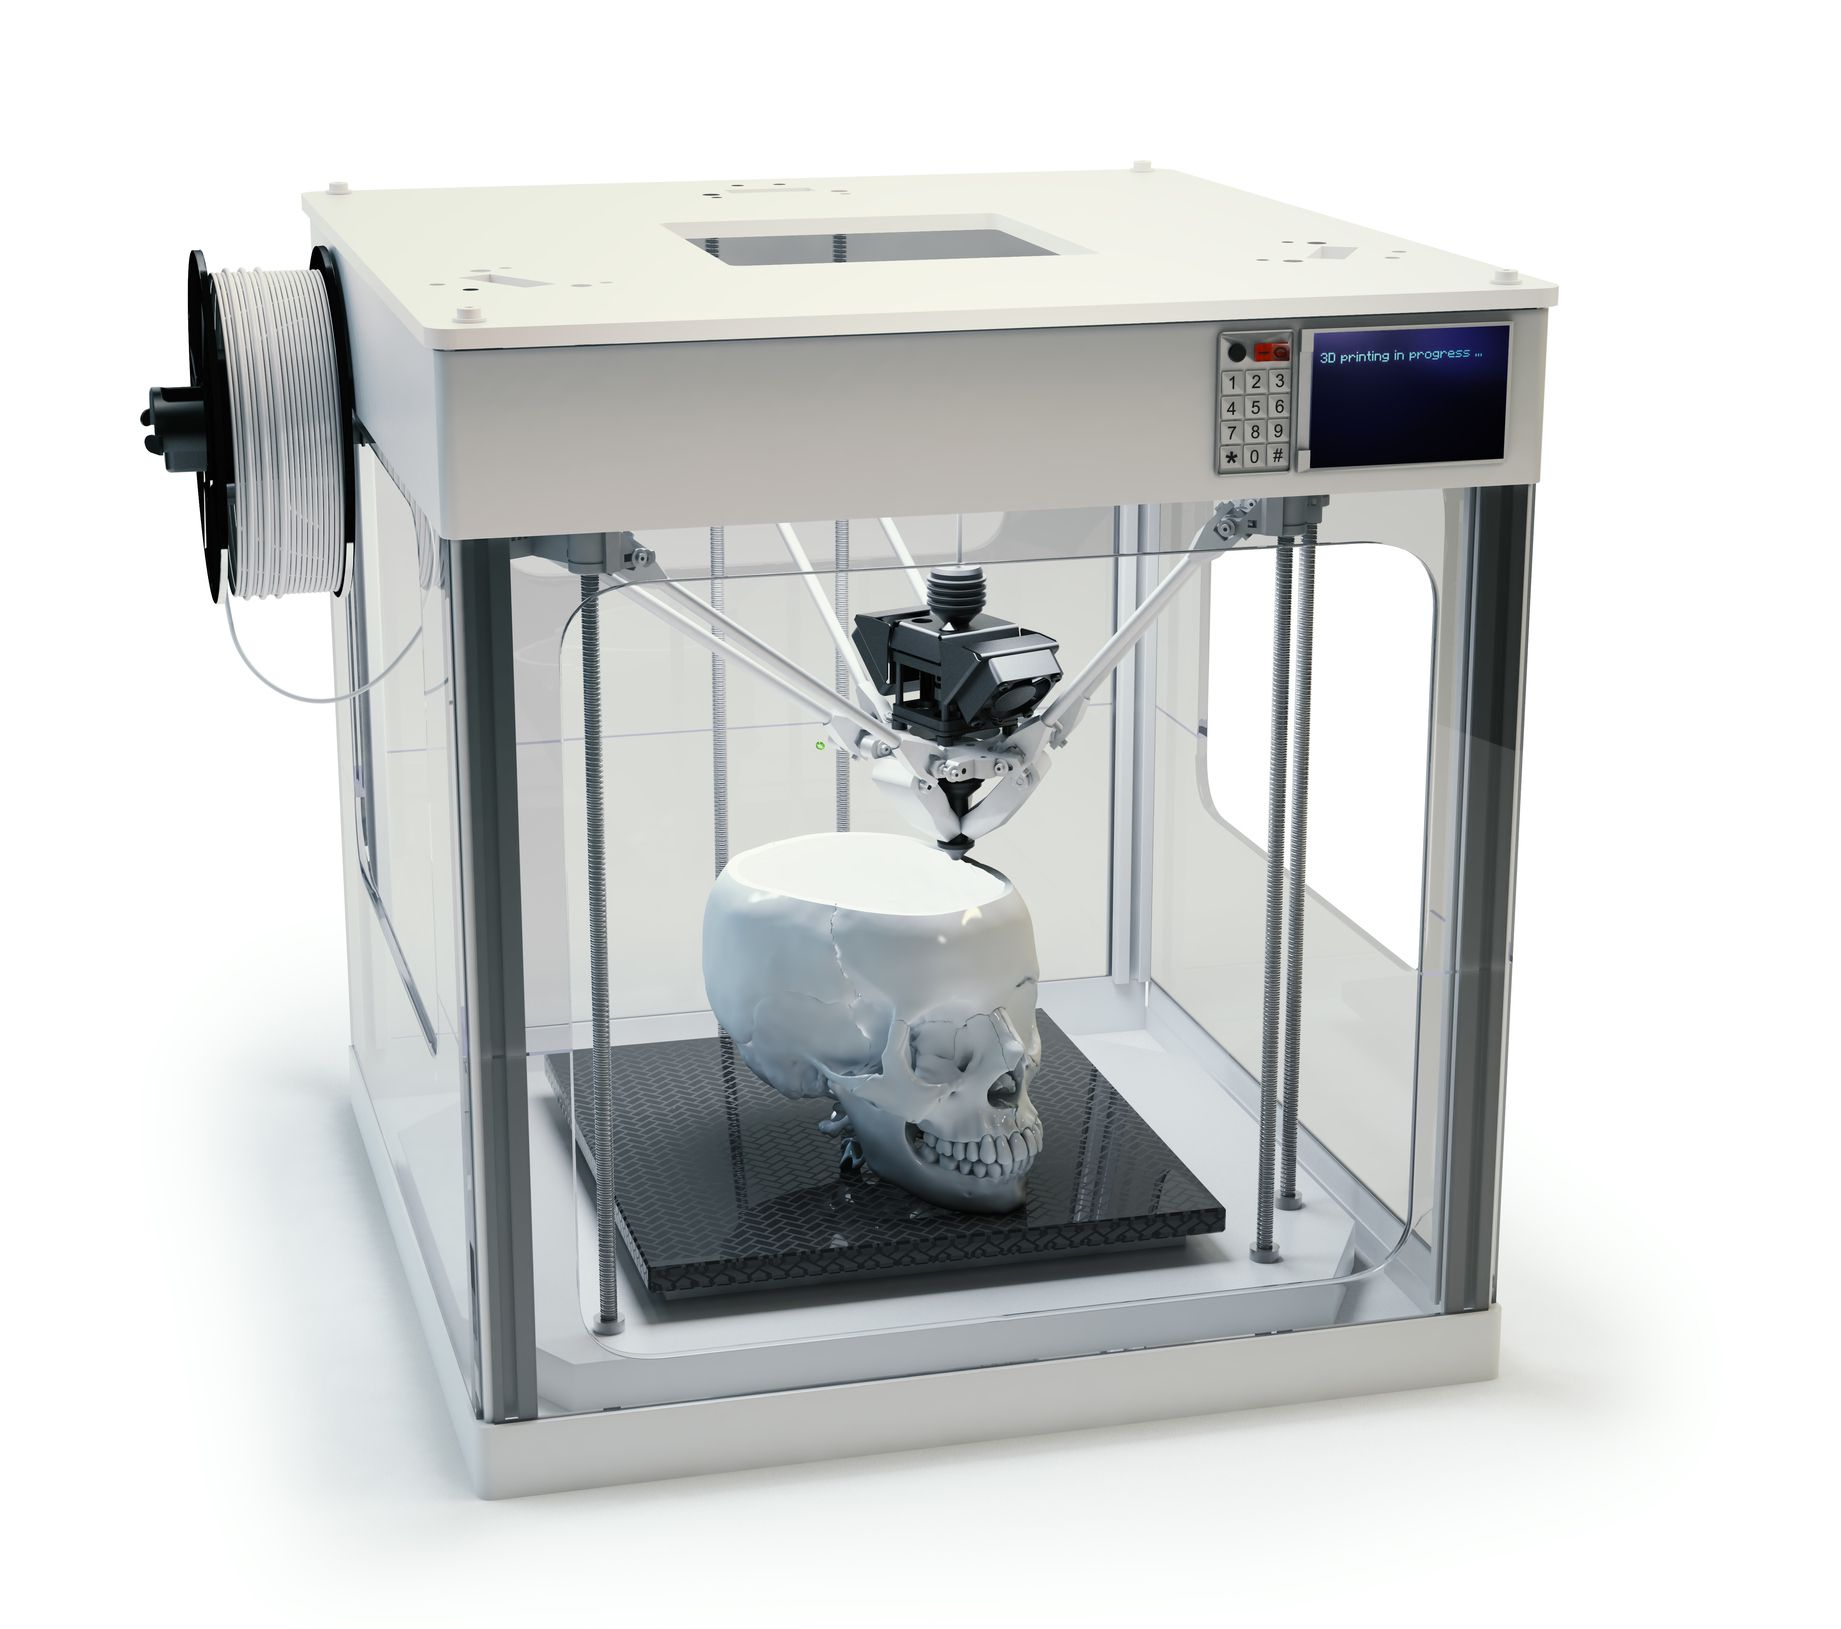 Trends In Improving 3D Printing